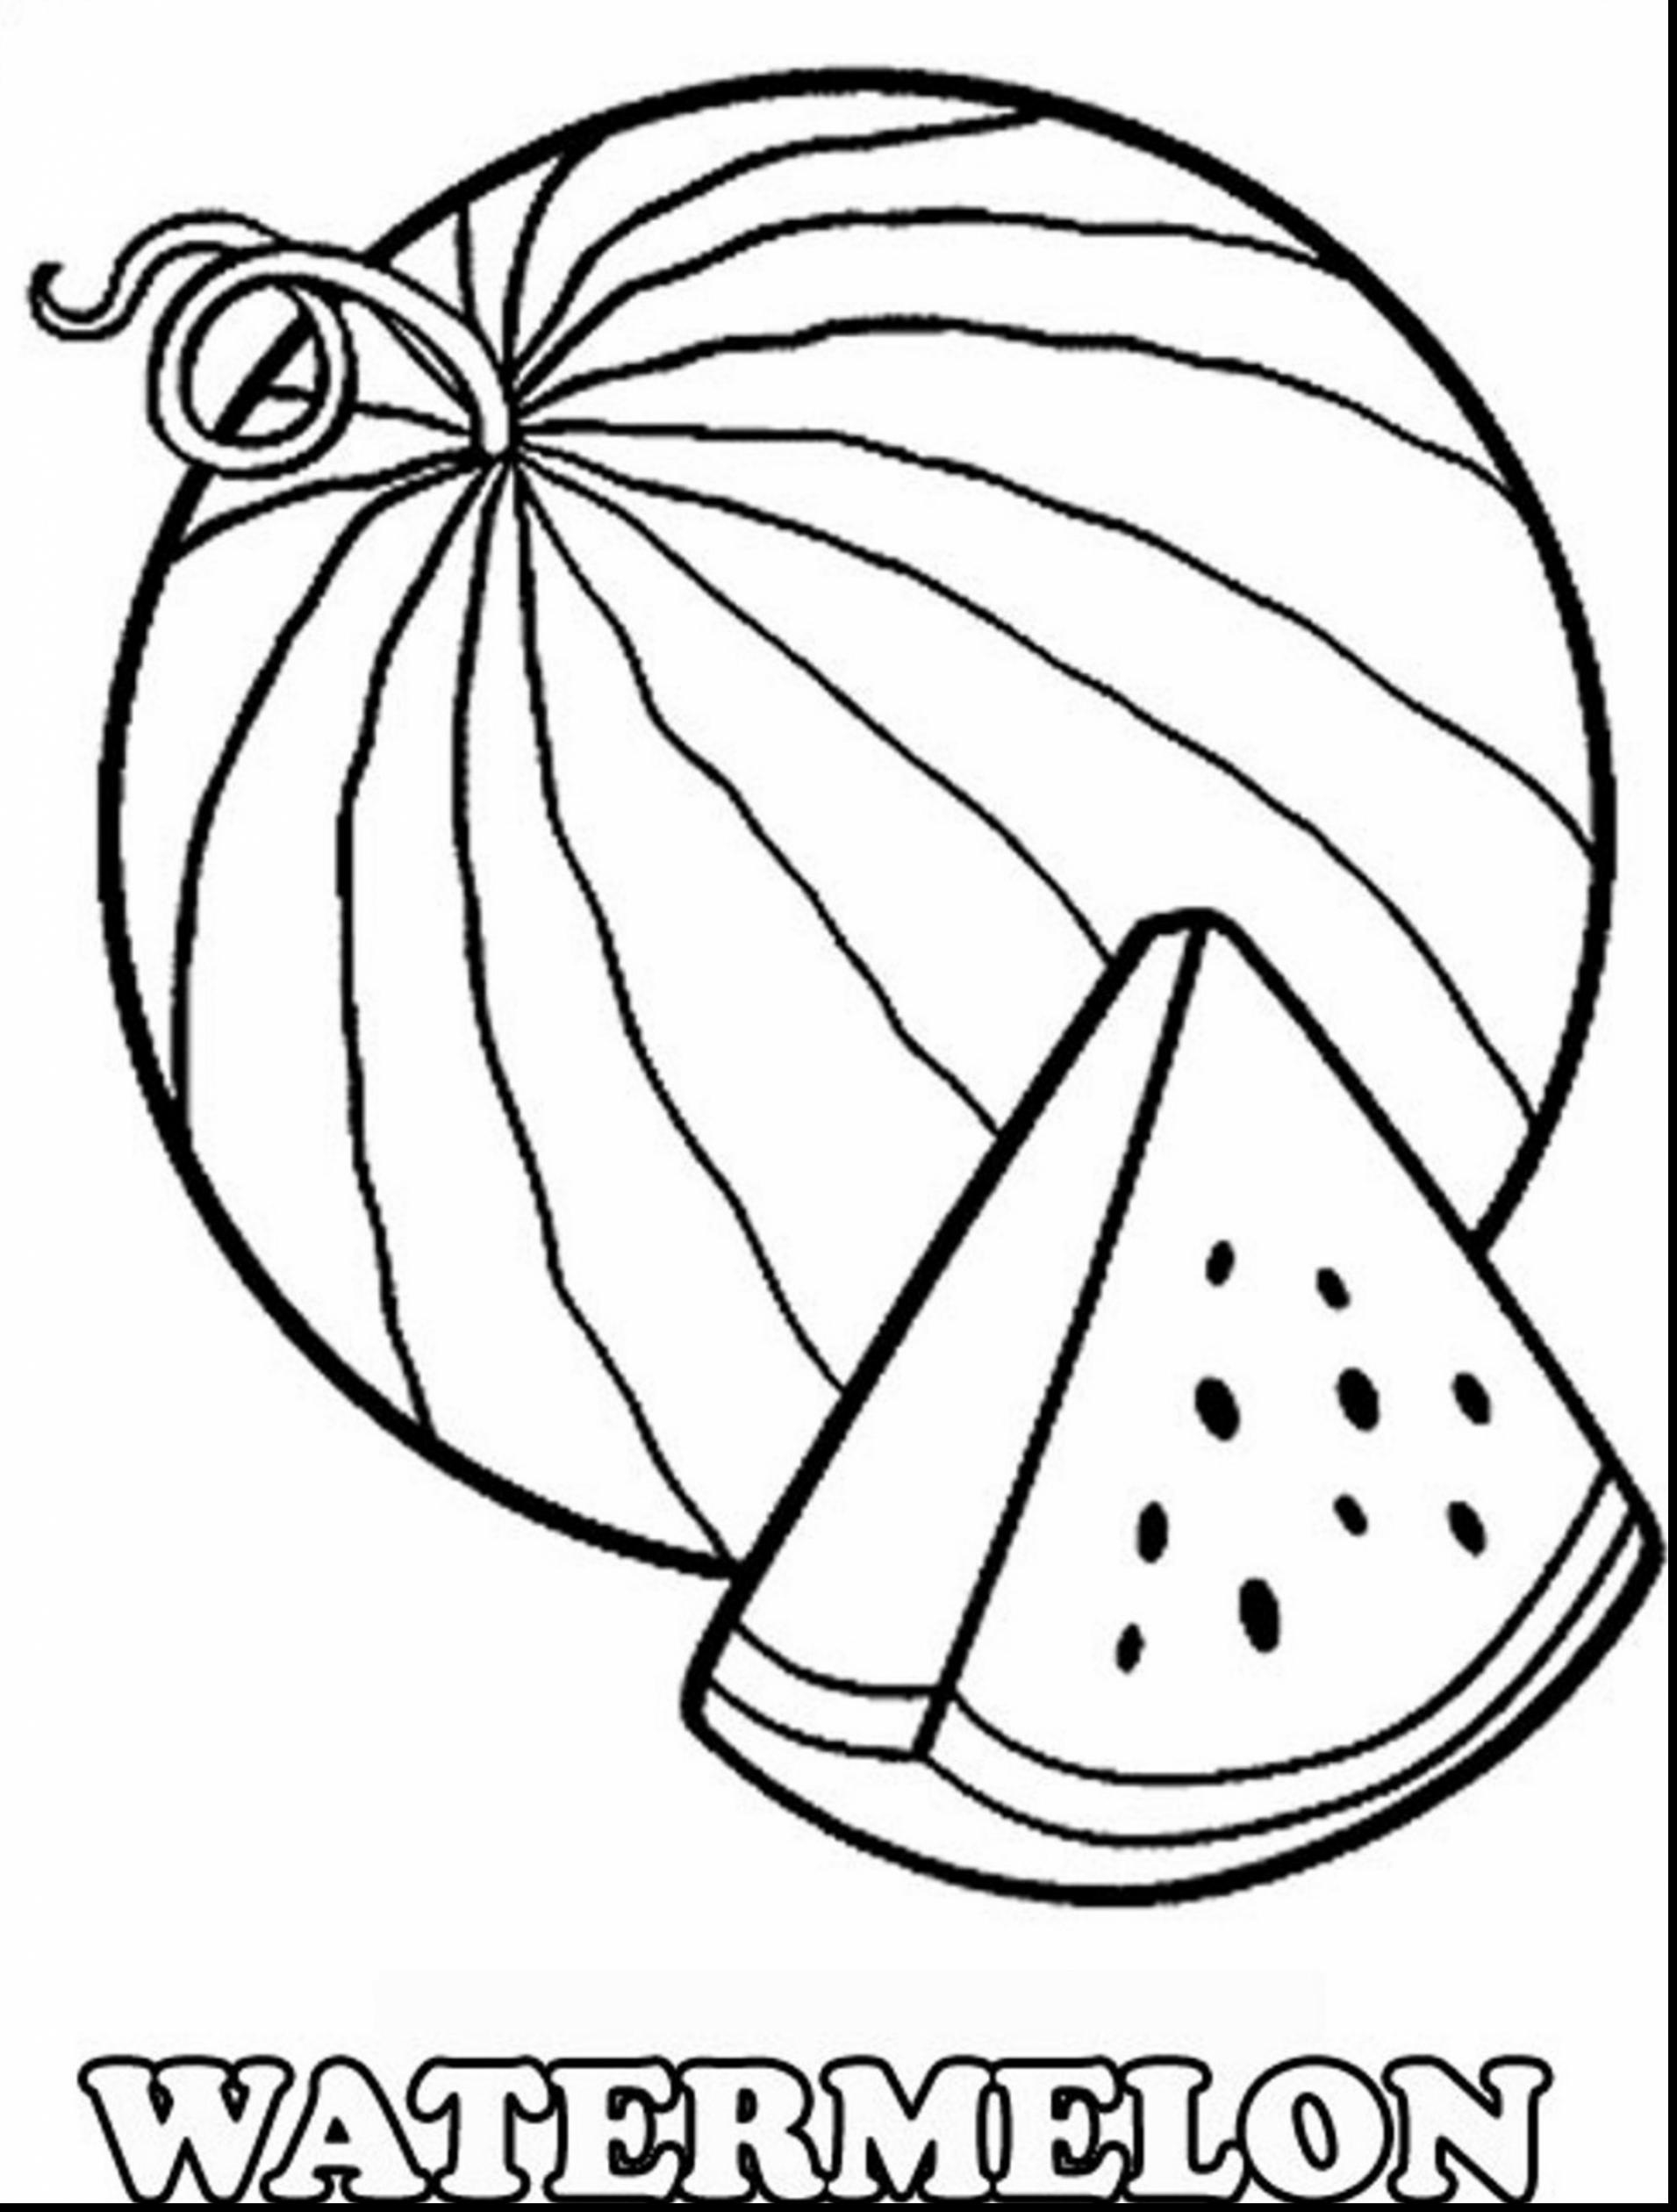 Watermelon clipart black and white Elegant Watermelon.